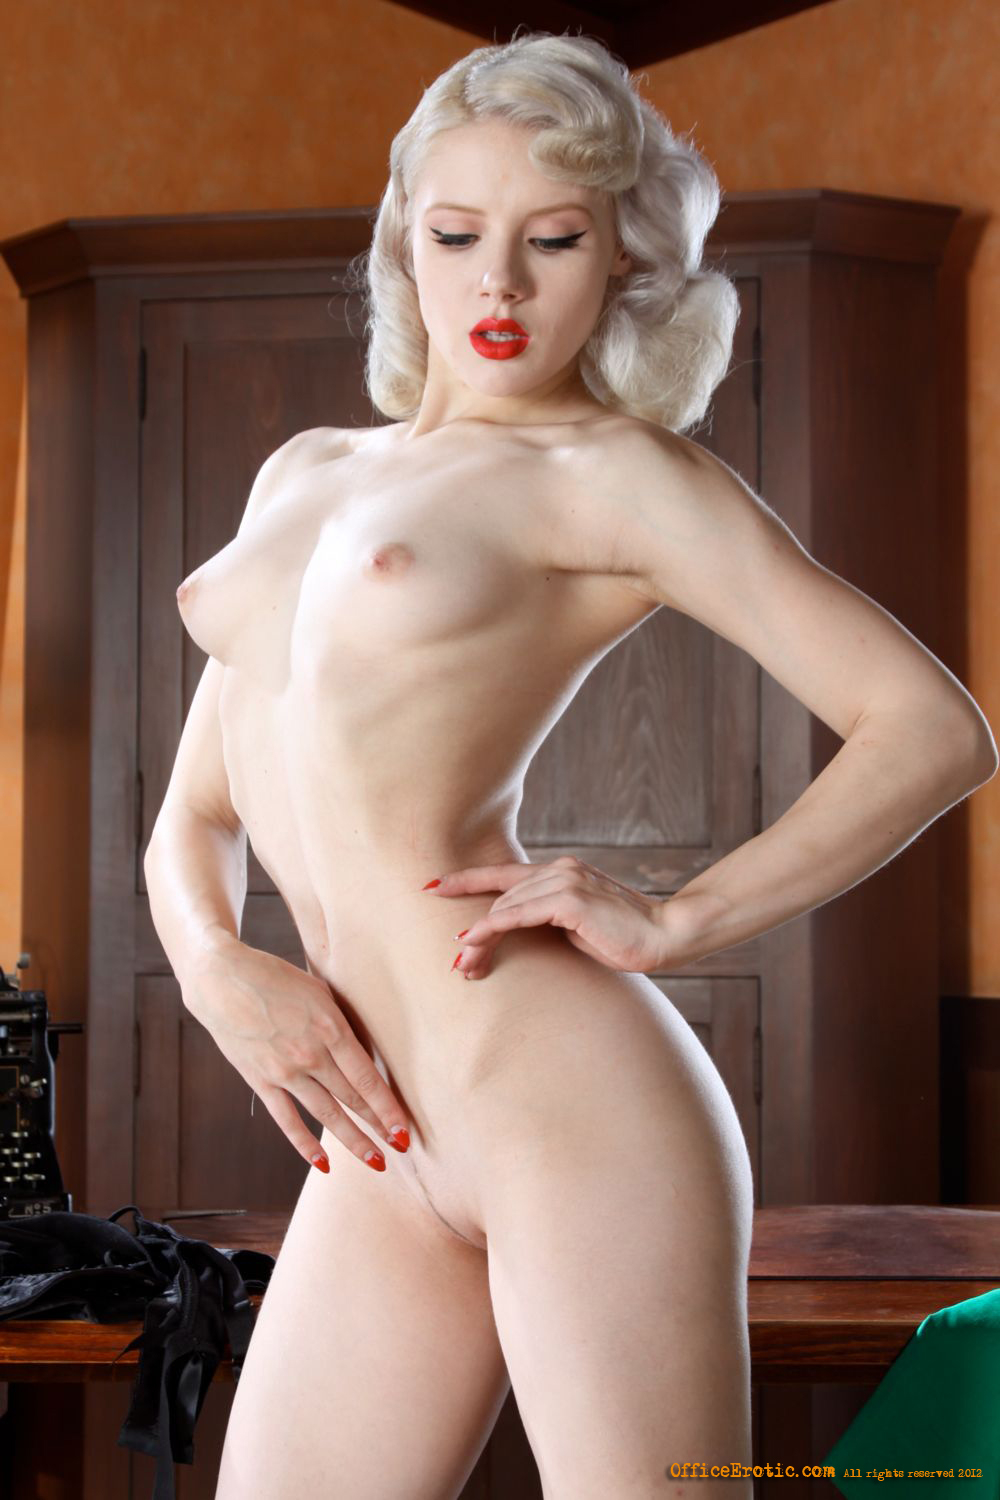 model-mosh-pussy-play-boy-mate-naked